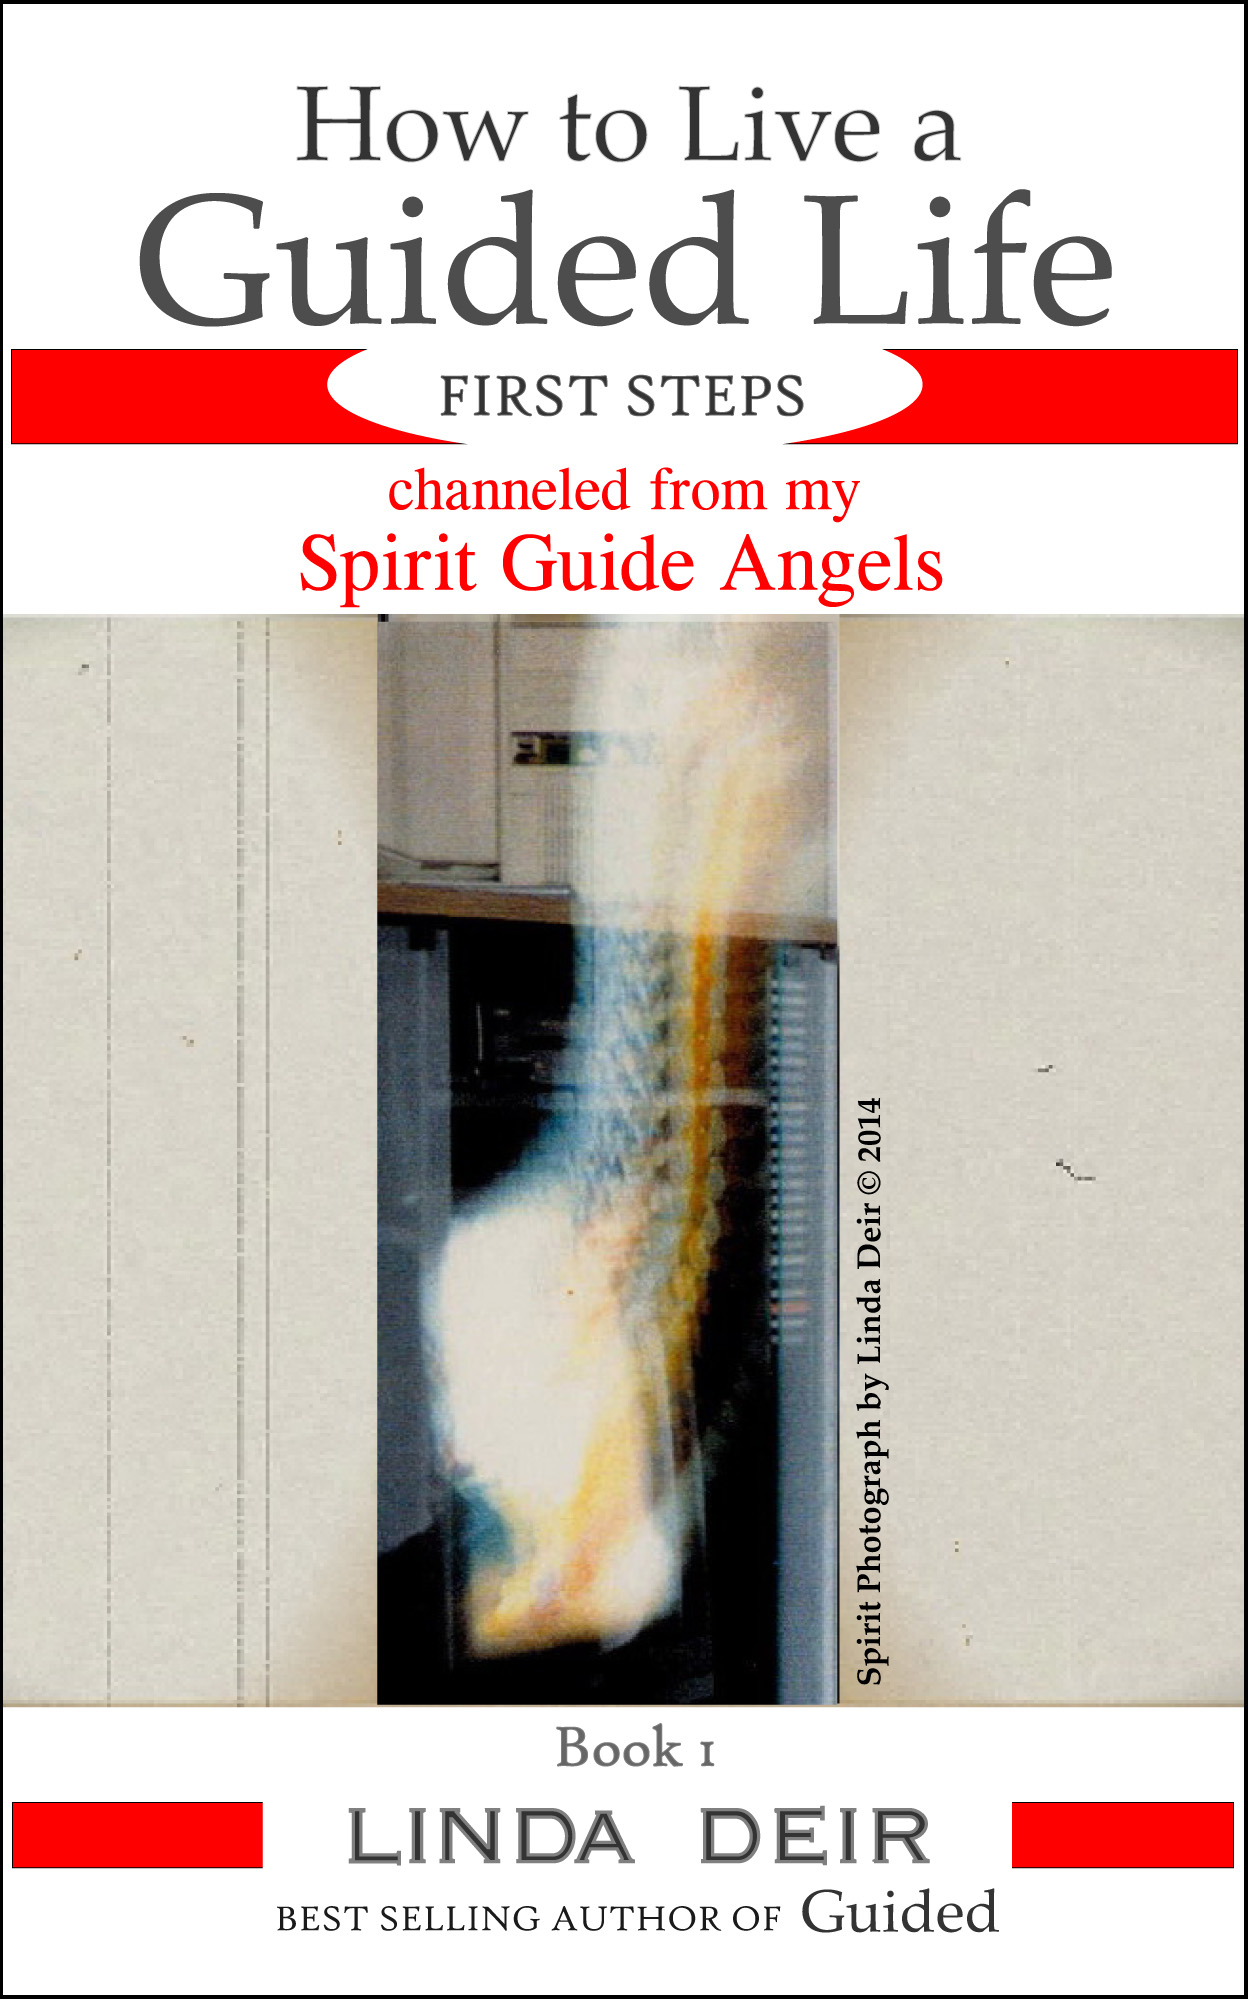 How to Live a Guided Life, FIRST STEPS: channeled from my Spirit Guide Angels, Book 1, by Linda Deir